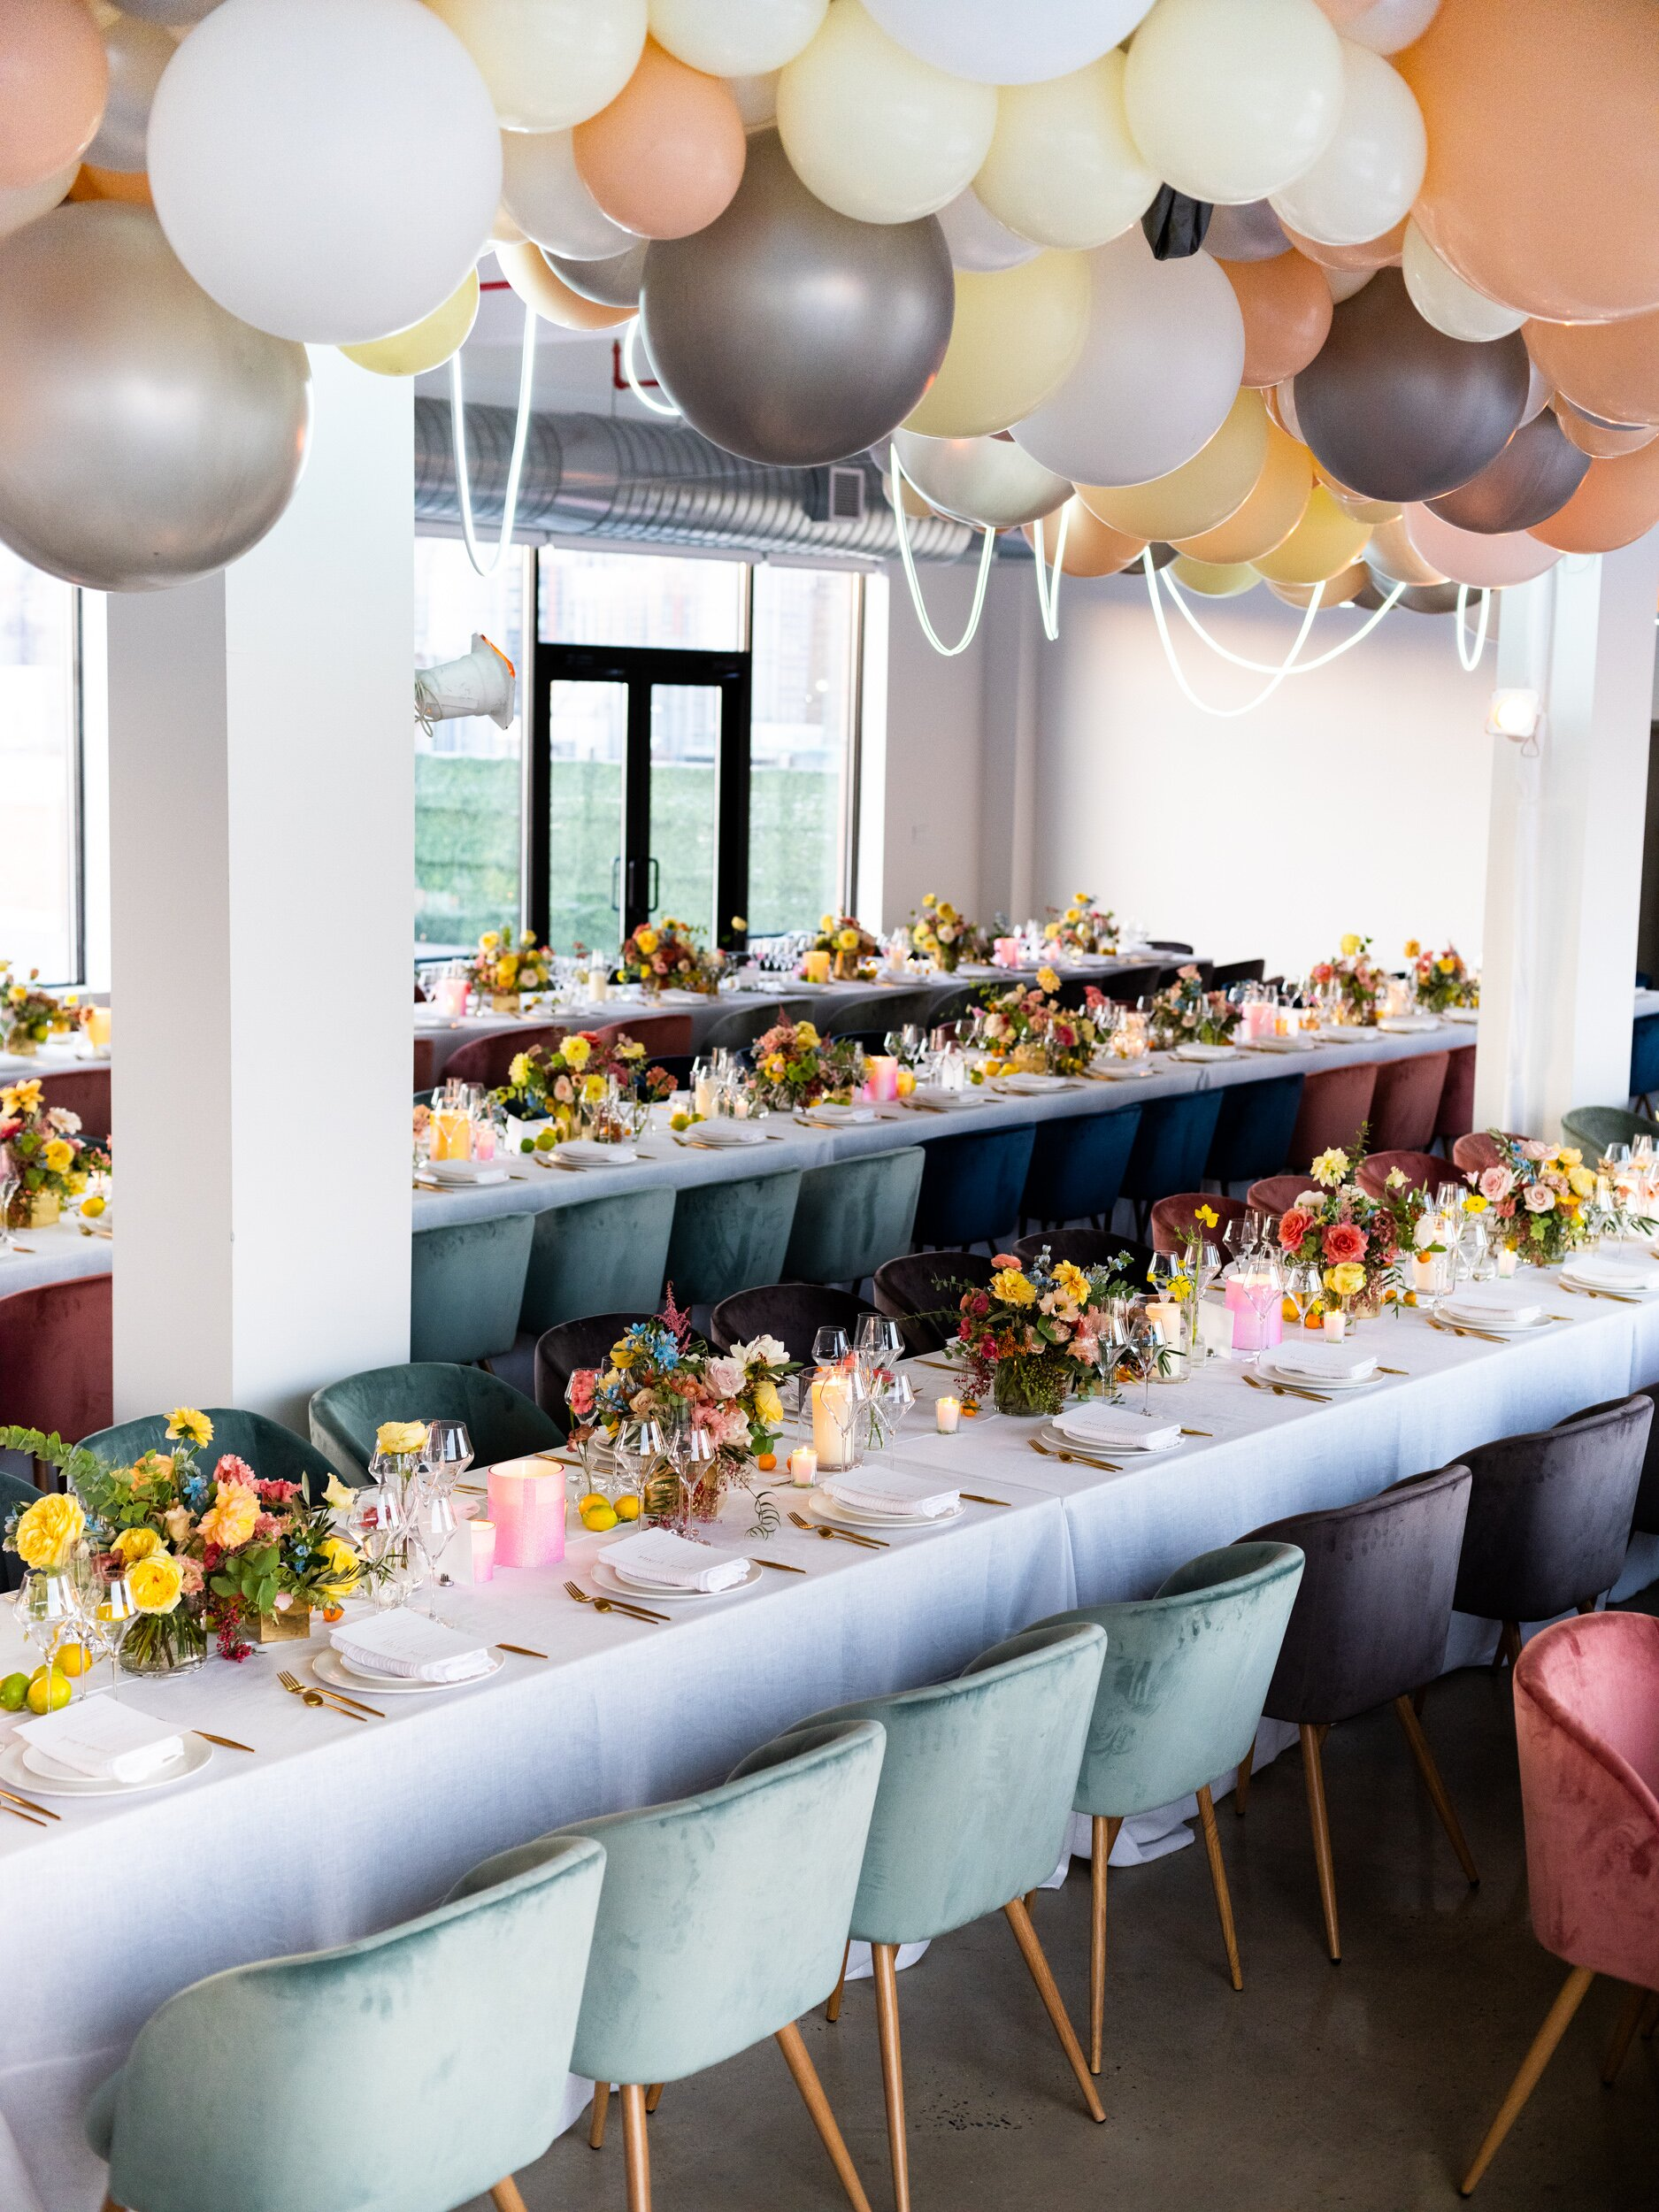 15 New Wedding Trends To Watch For In 2019 According To Planners